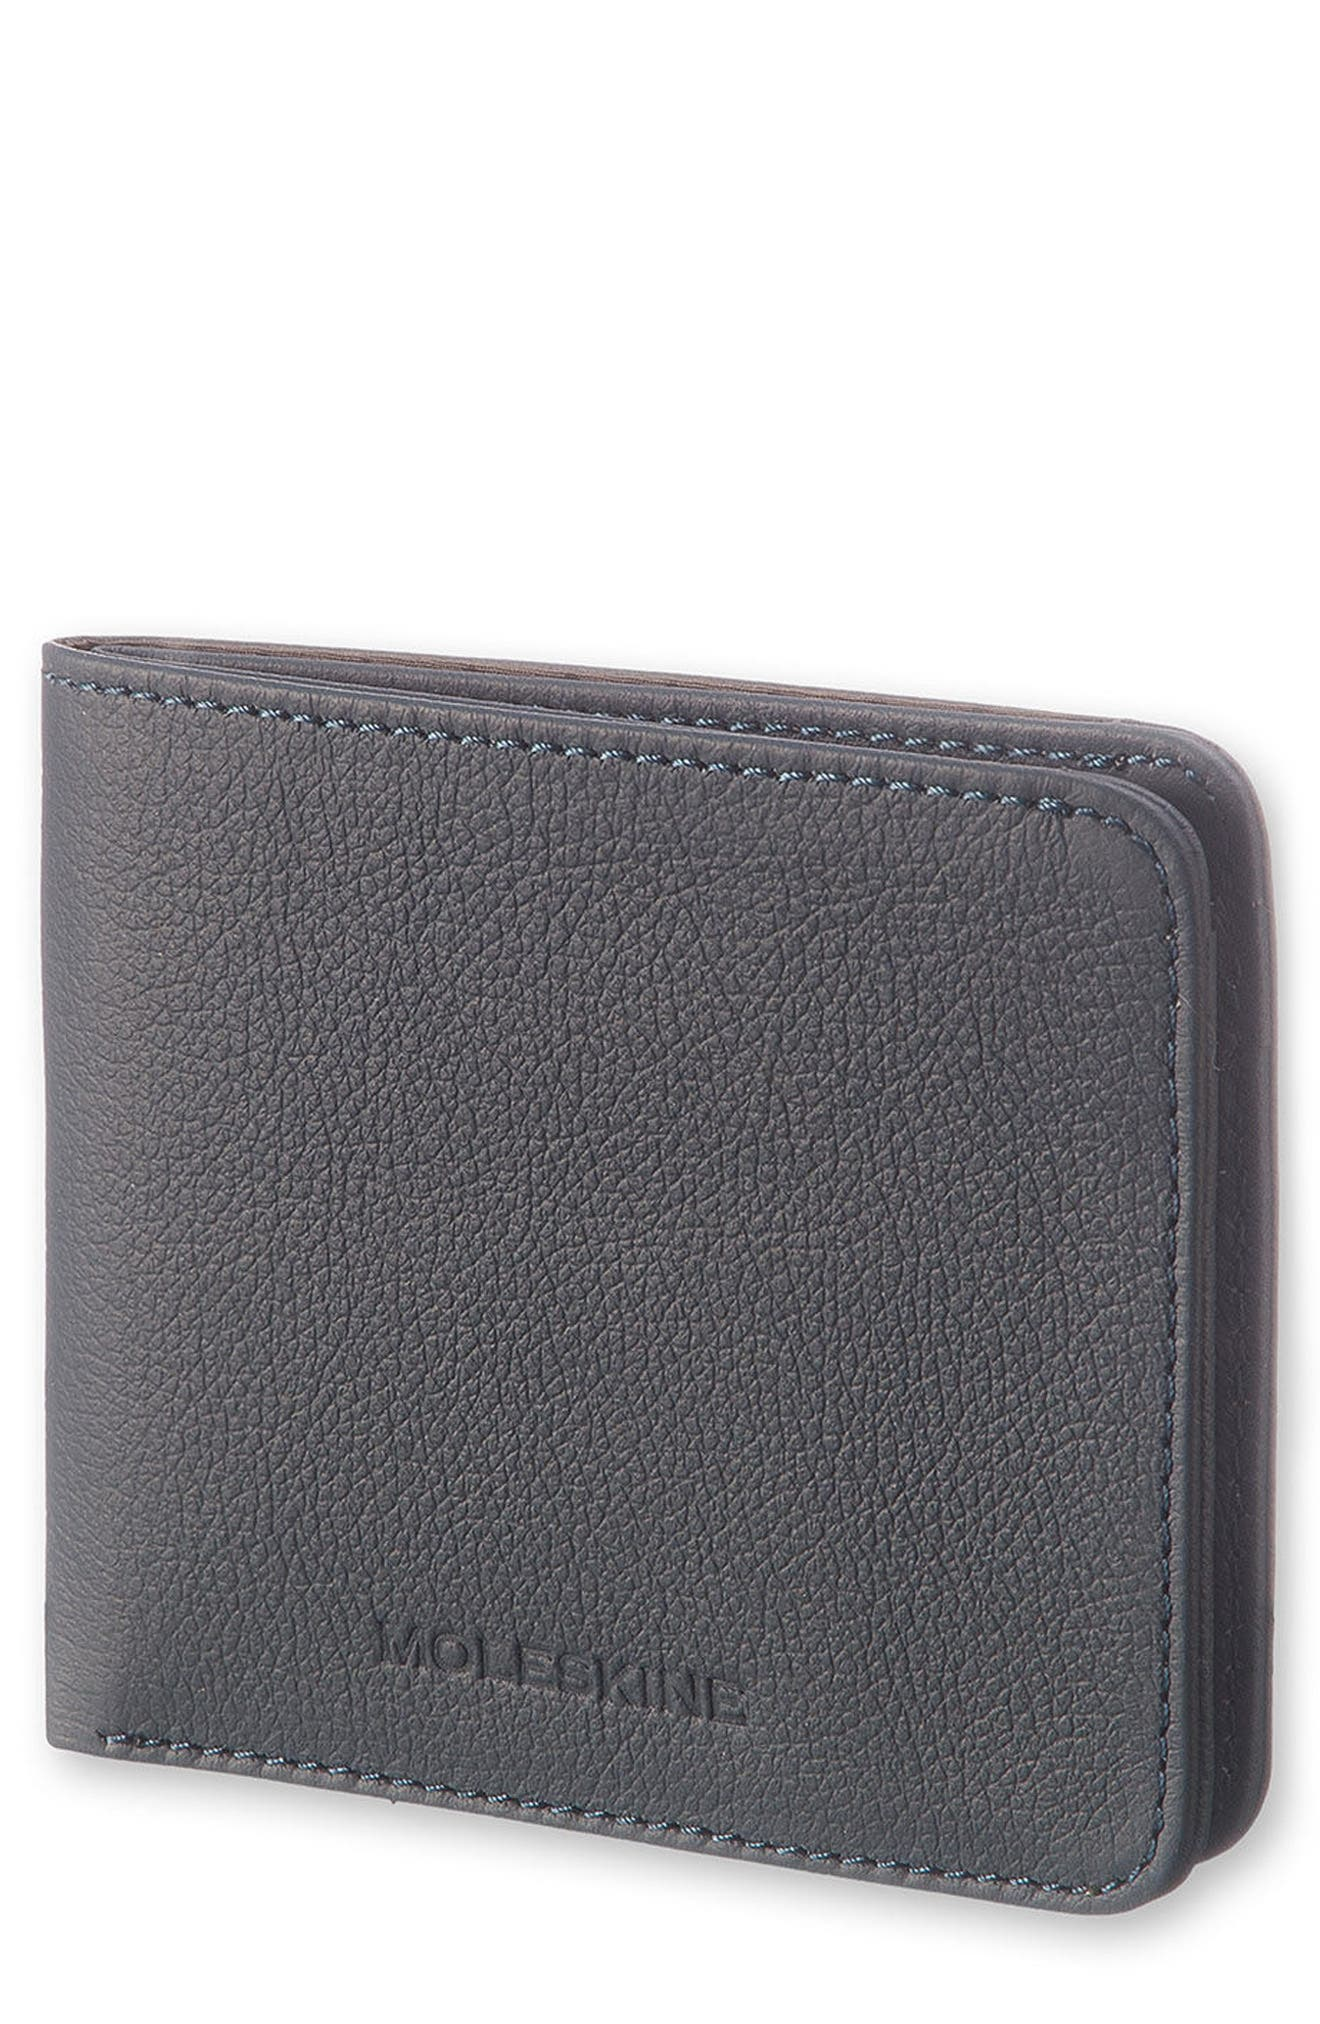 Lineage Leather Wallet,                             Main thumbnail 1, color,                             Avio Blue